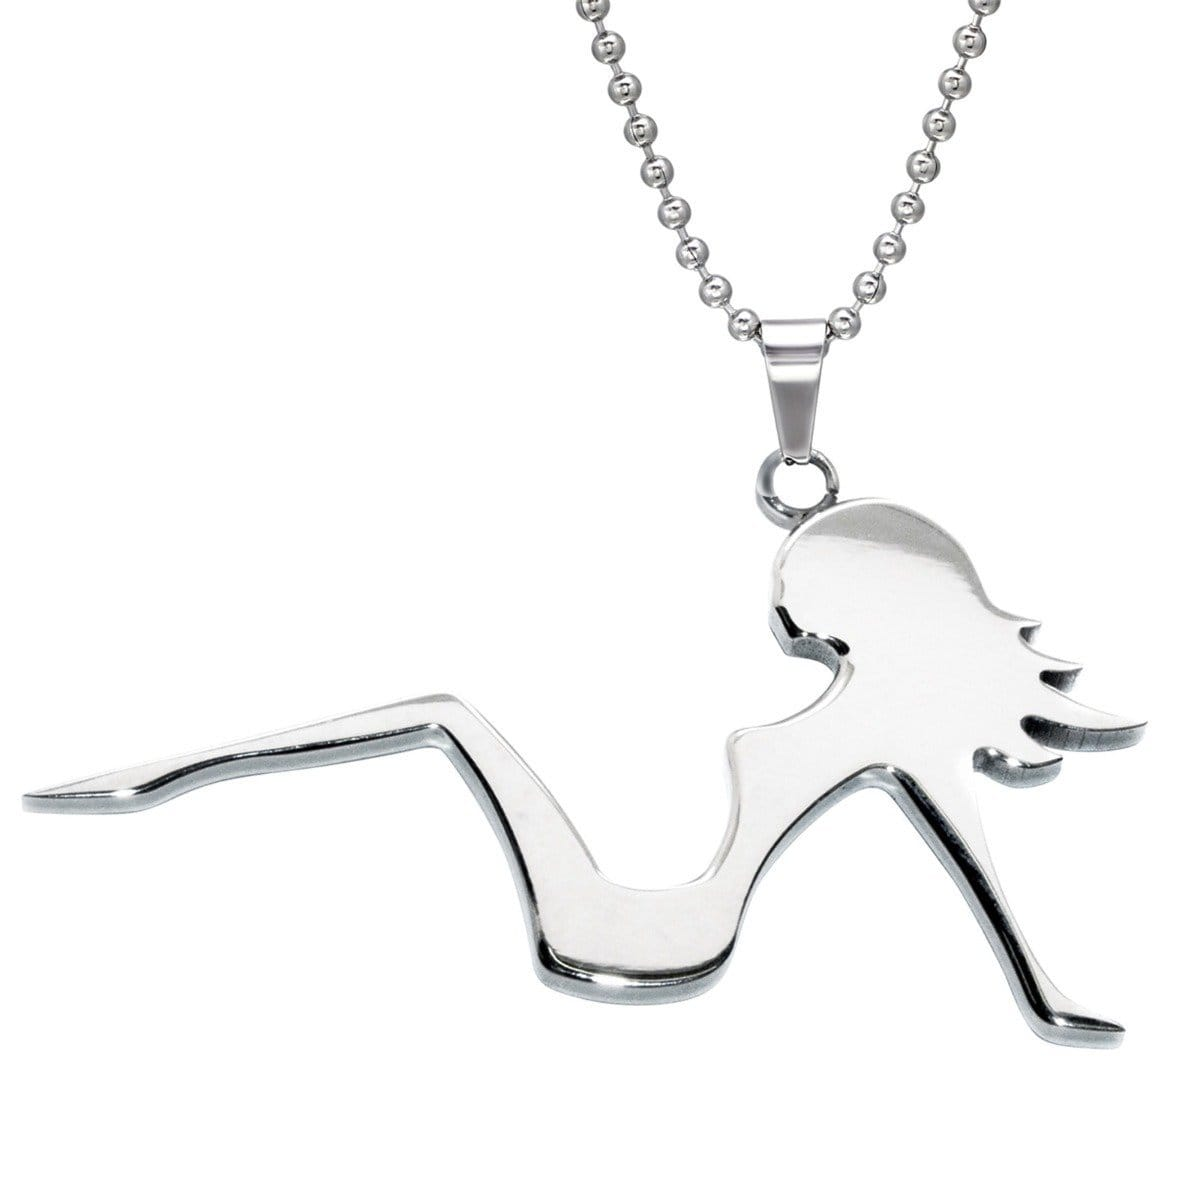 Stainless Steel Girl Sexy Pendant Necklace